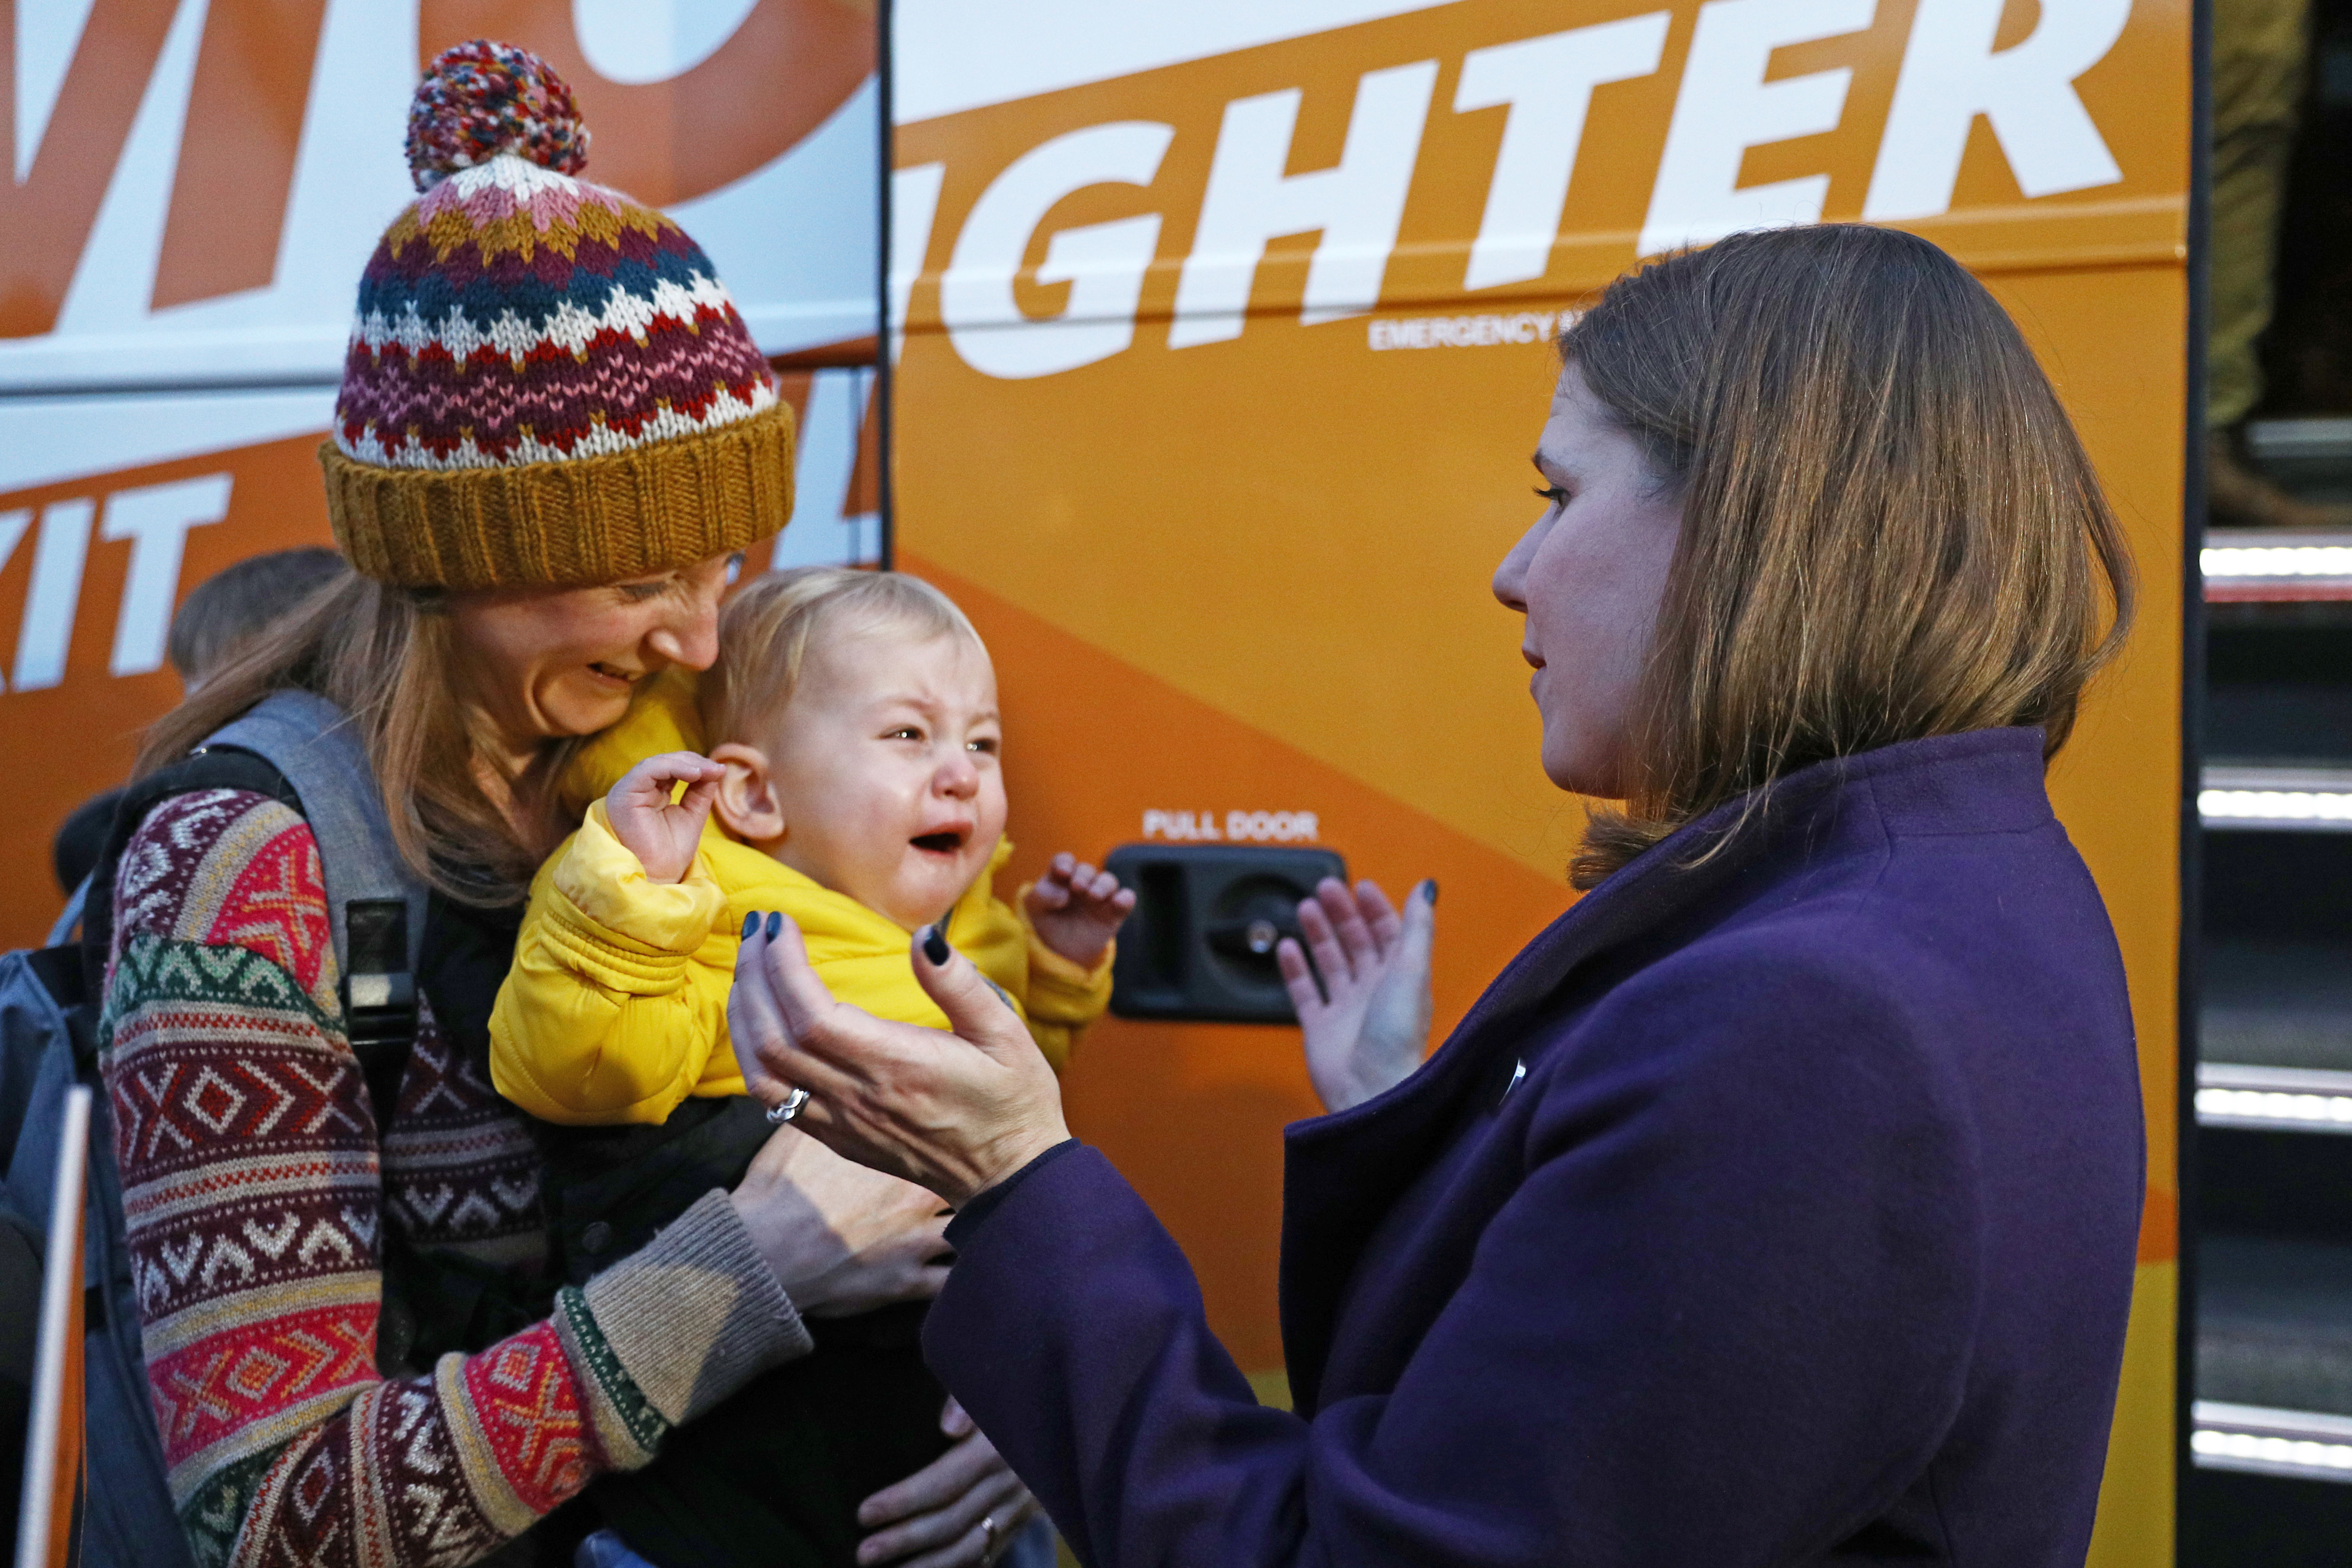 Liberal Democrat leader Jo Swinson meets supporters during a visit to Dunkertons Cider Company, an organic and plastic free brewery in Cheltenham, Gloucestershire, during campaigning for the General Election.